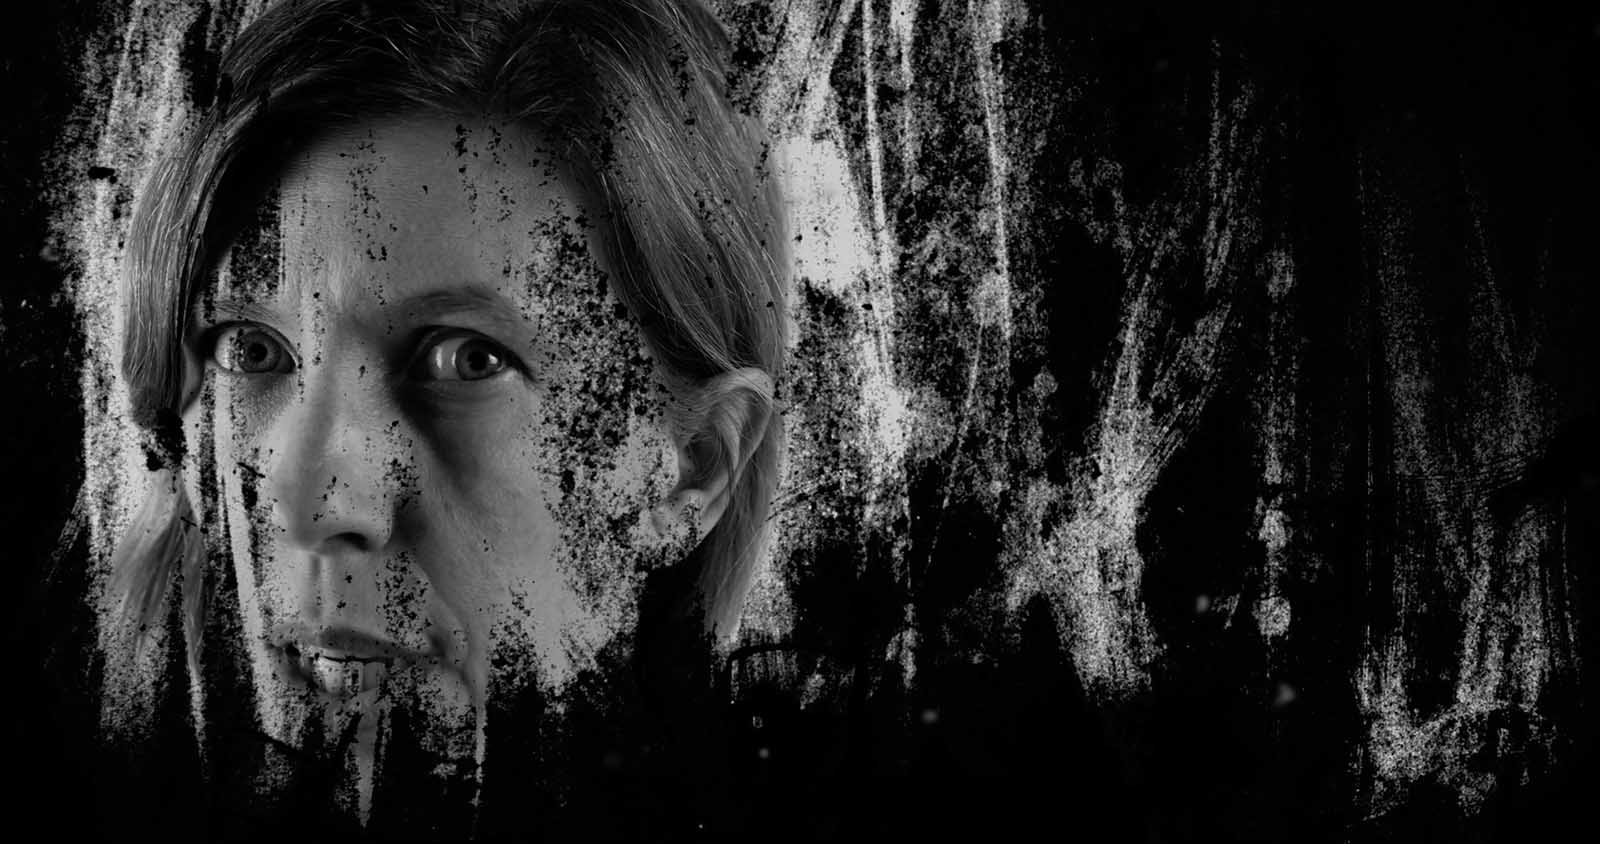 Director Alberto Martín-Aragón has made a name for himself with experimental black and white short films, and he continues his streak with 'Collapse'.